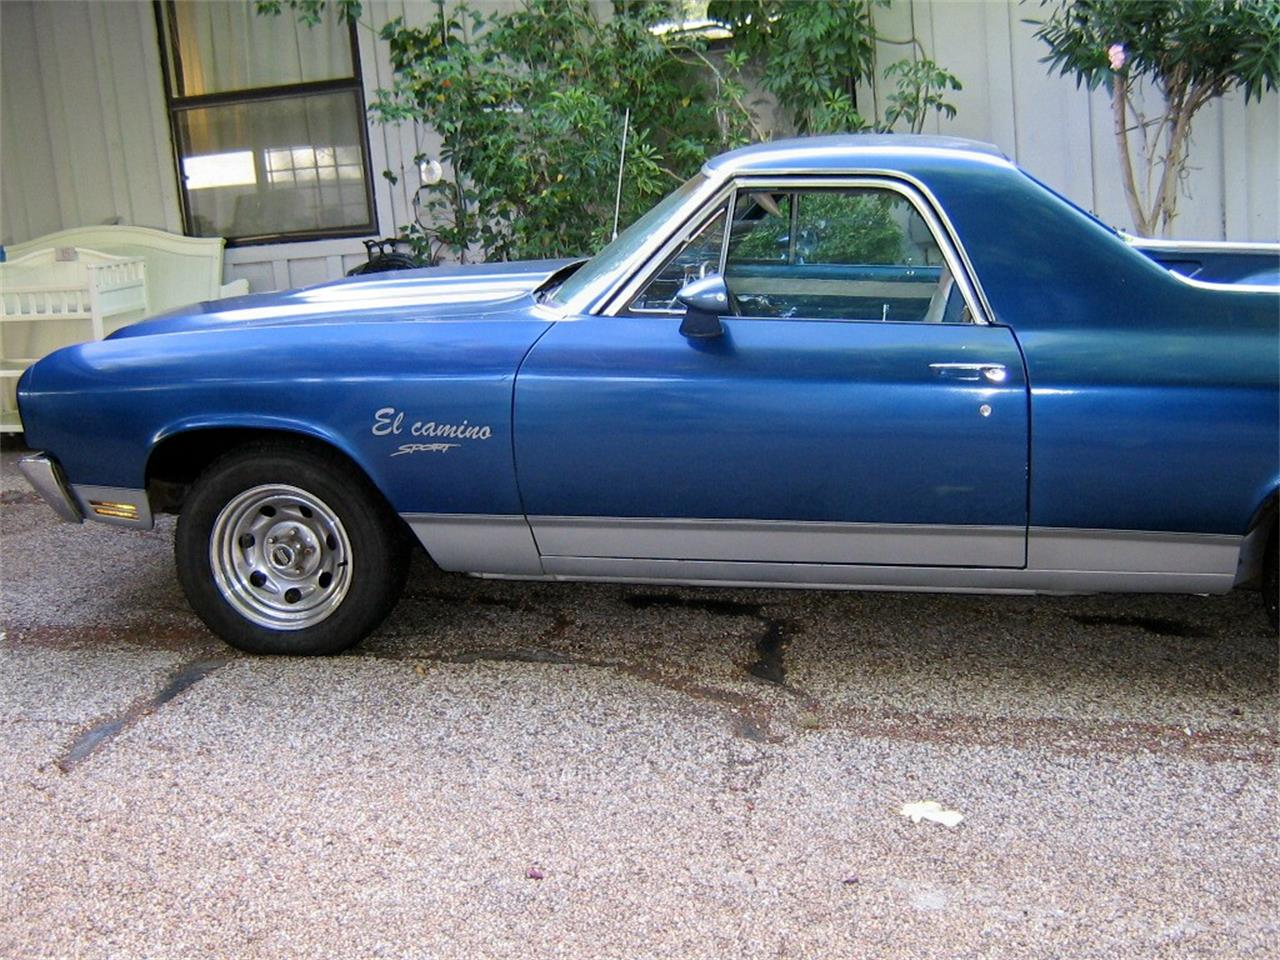 Large Picture of 1970 El Camino located in San Rafael California - $7,500.00 Offered by a Private Seller - F7TK